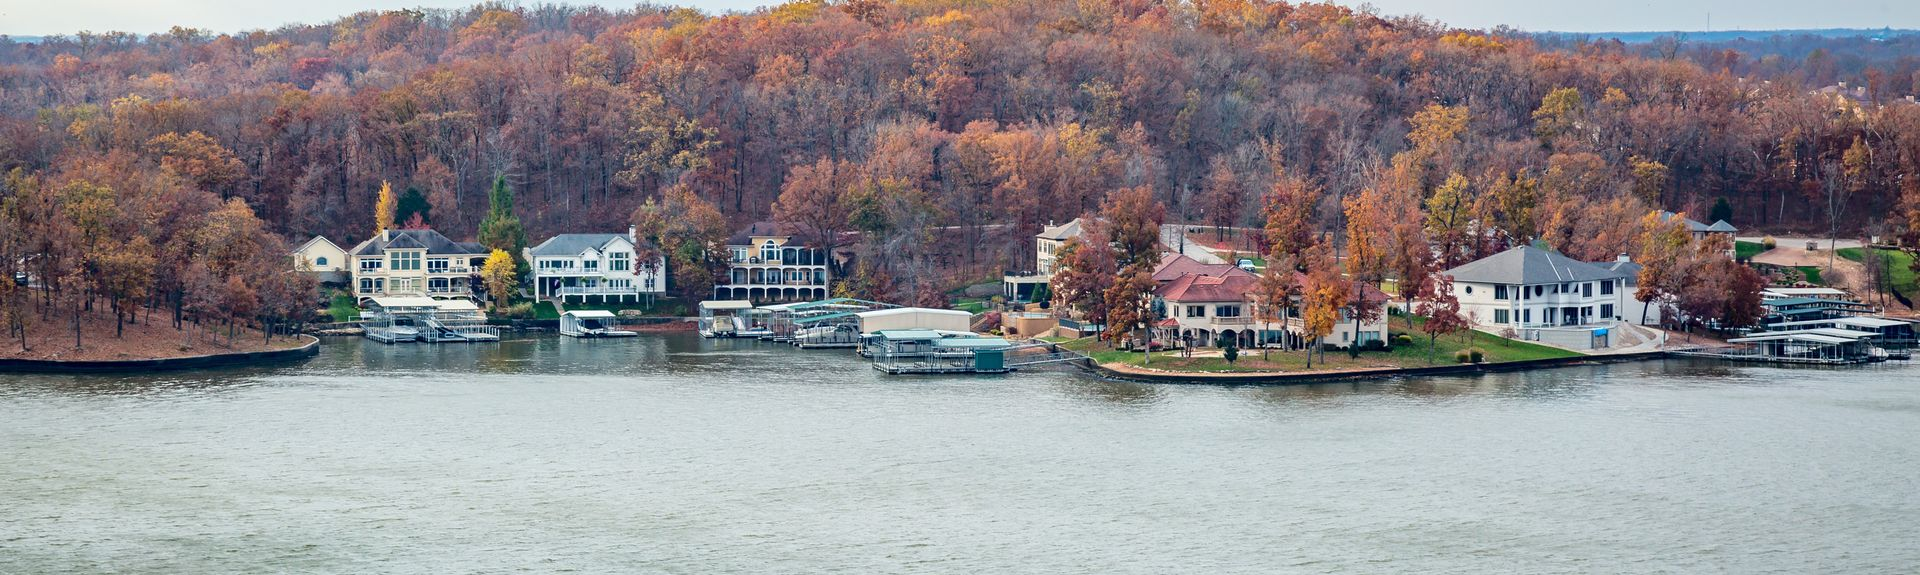 Lake Ozark Missouri >> Vrbo Lake Of The Ozarks Us Vacation Rentals House Rentals More